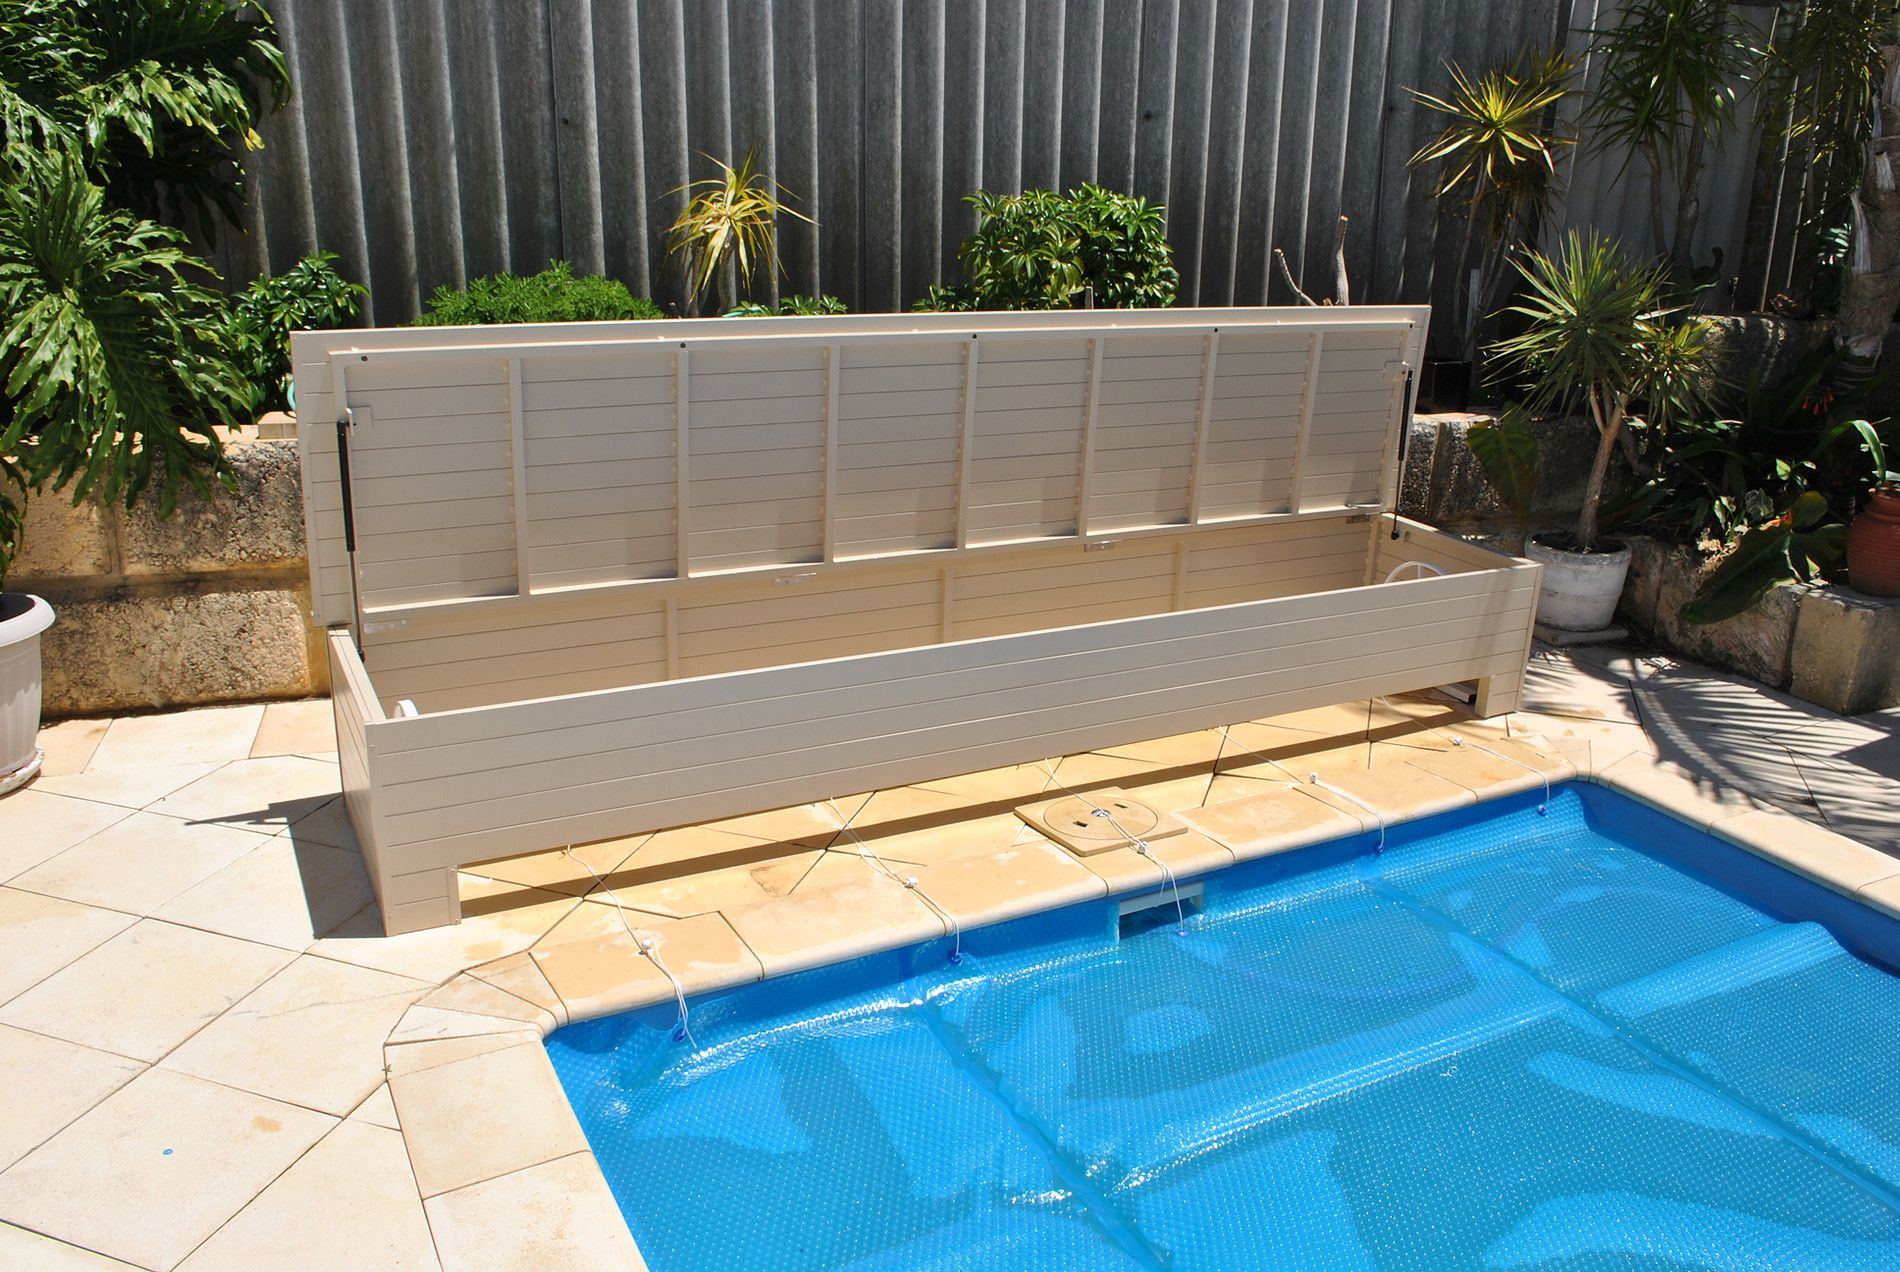 Do You Have An Above Ground Pool Amp Need To Hide Your Pool